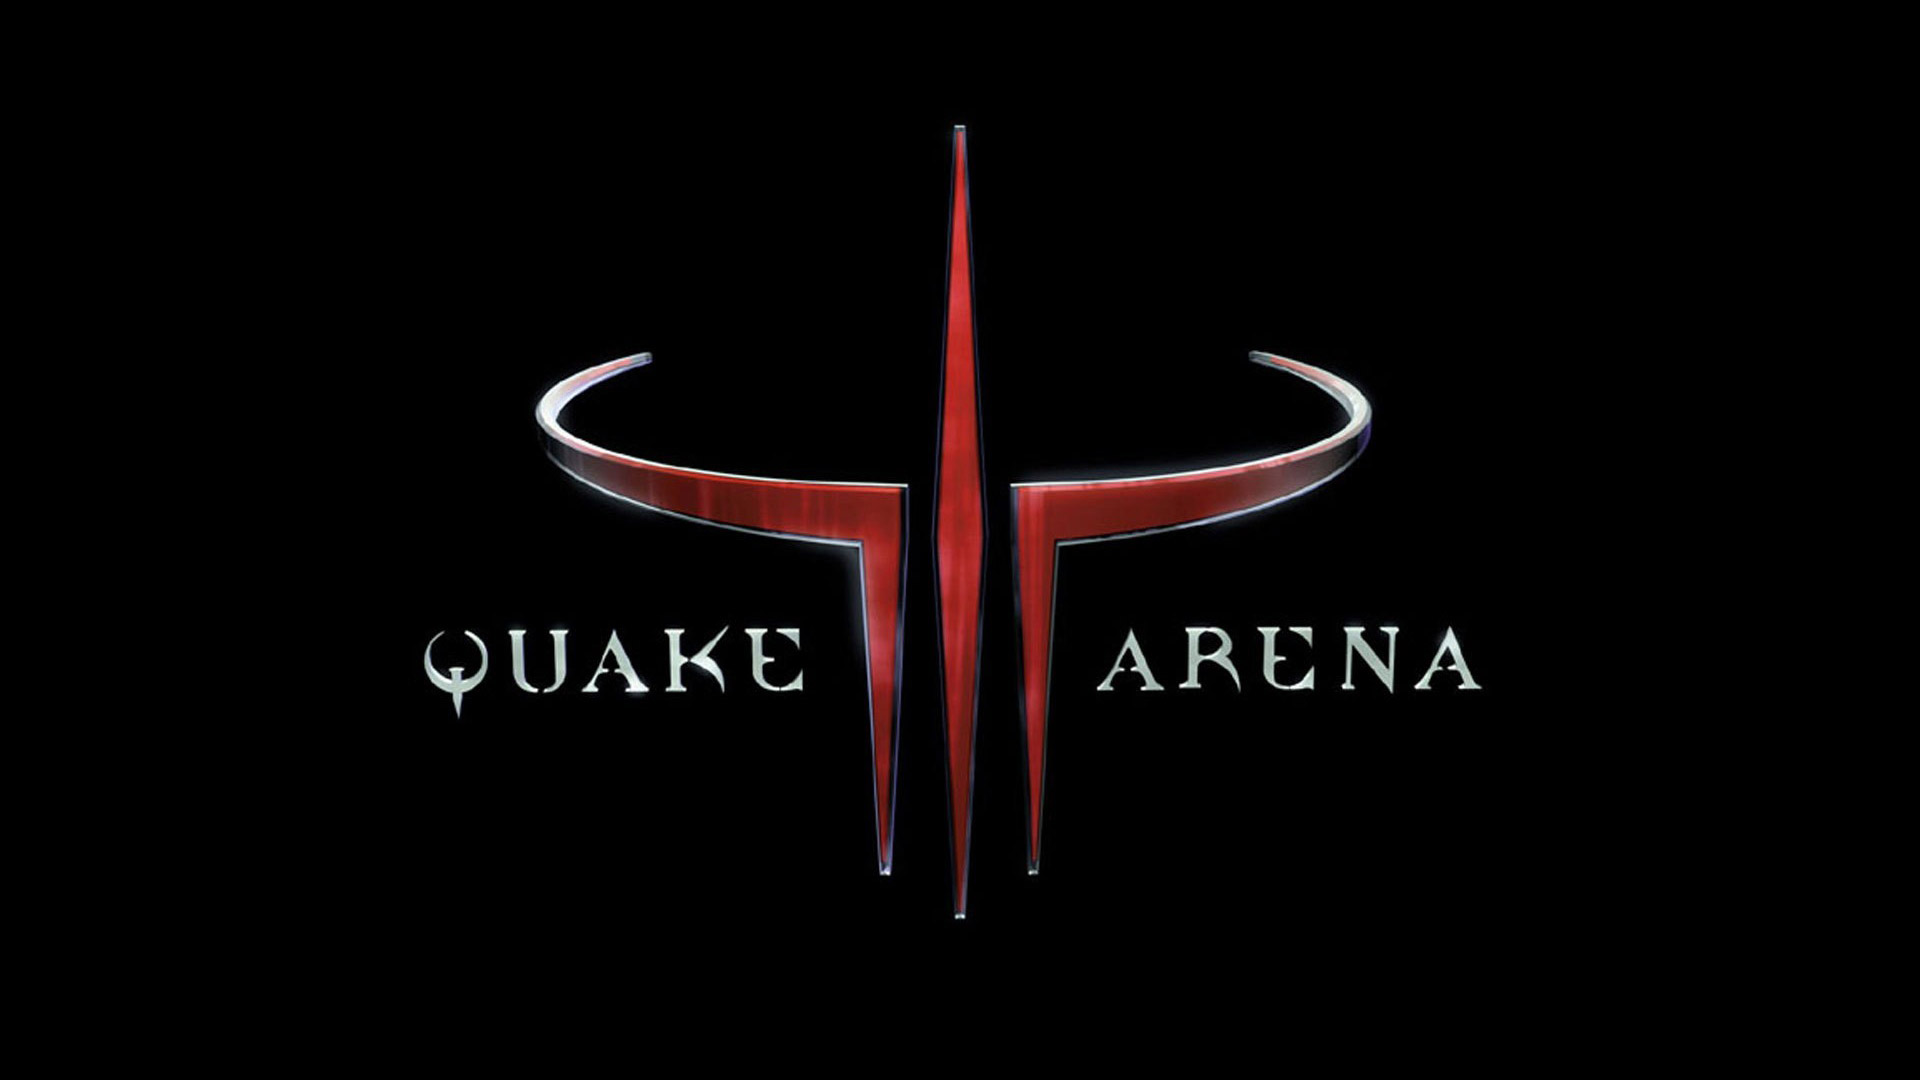 Free Quake III Arena Wallpaper in 1920x1080